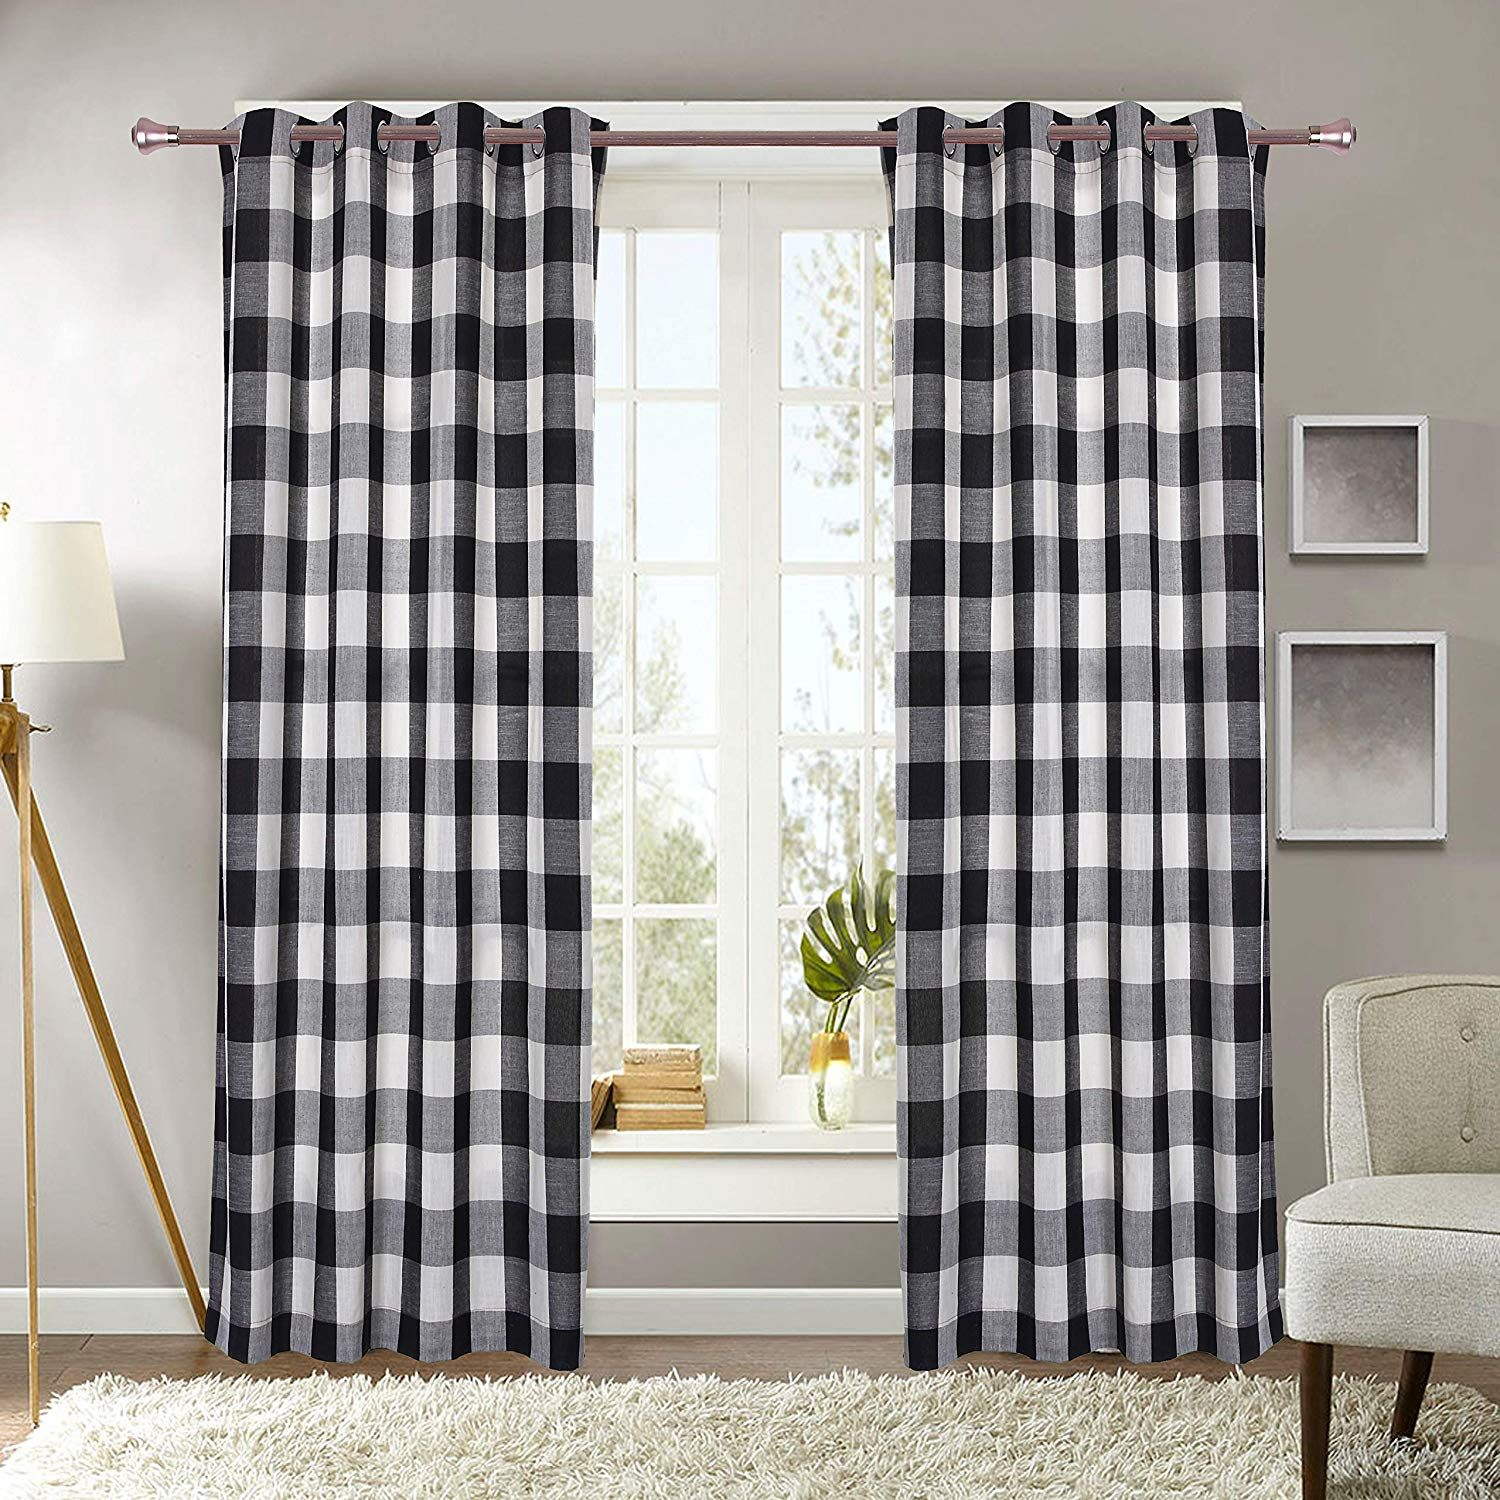 Decotex 2 Piece Plaid Courtyard Buffalo Checkered Grommet Top Window Curtain Panel Drapes 2 Panels 53 X 63 Black Beige Walmart Com Curtains Buffalo Plaid Curtains Custom Drapes